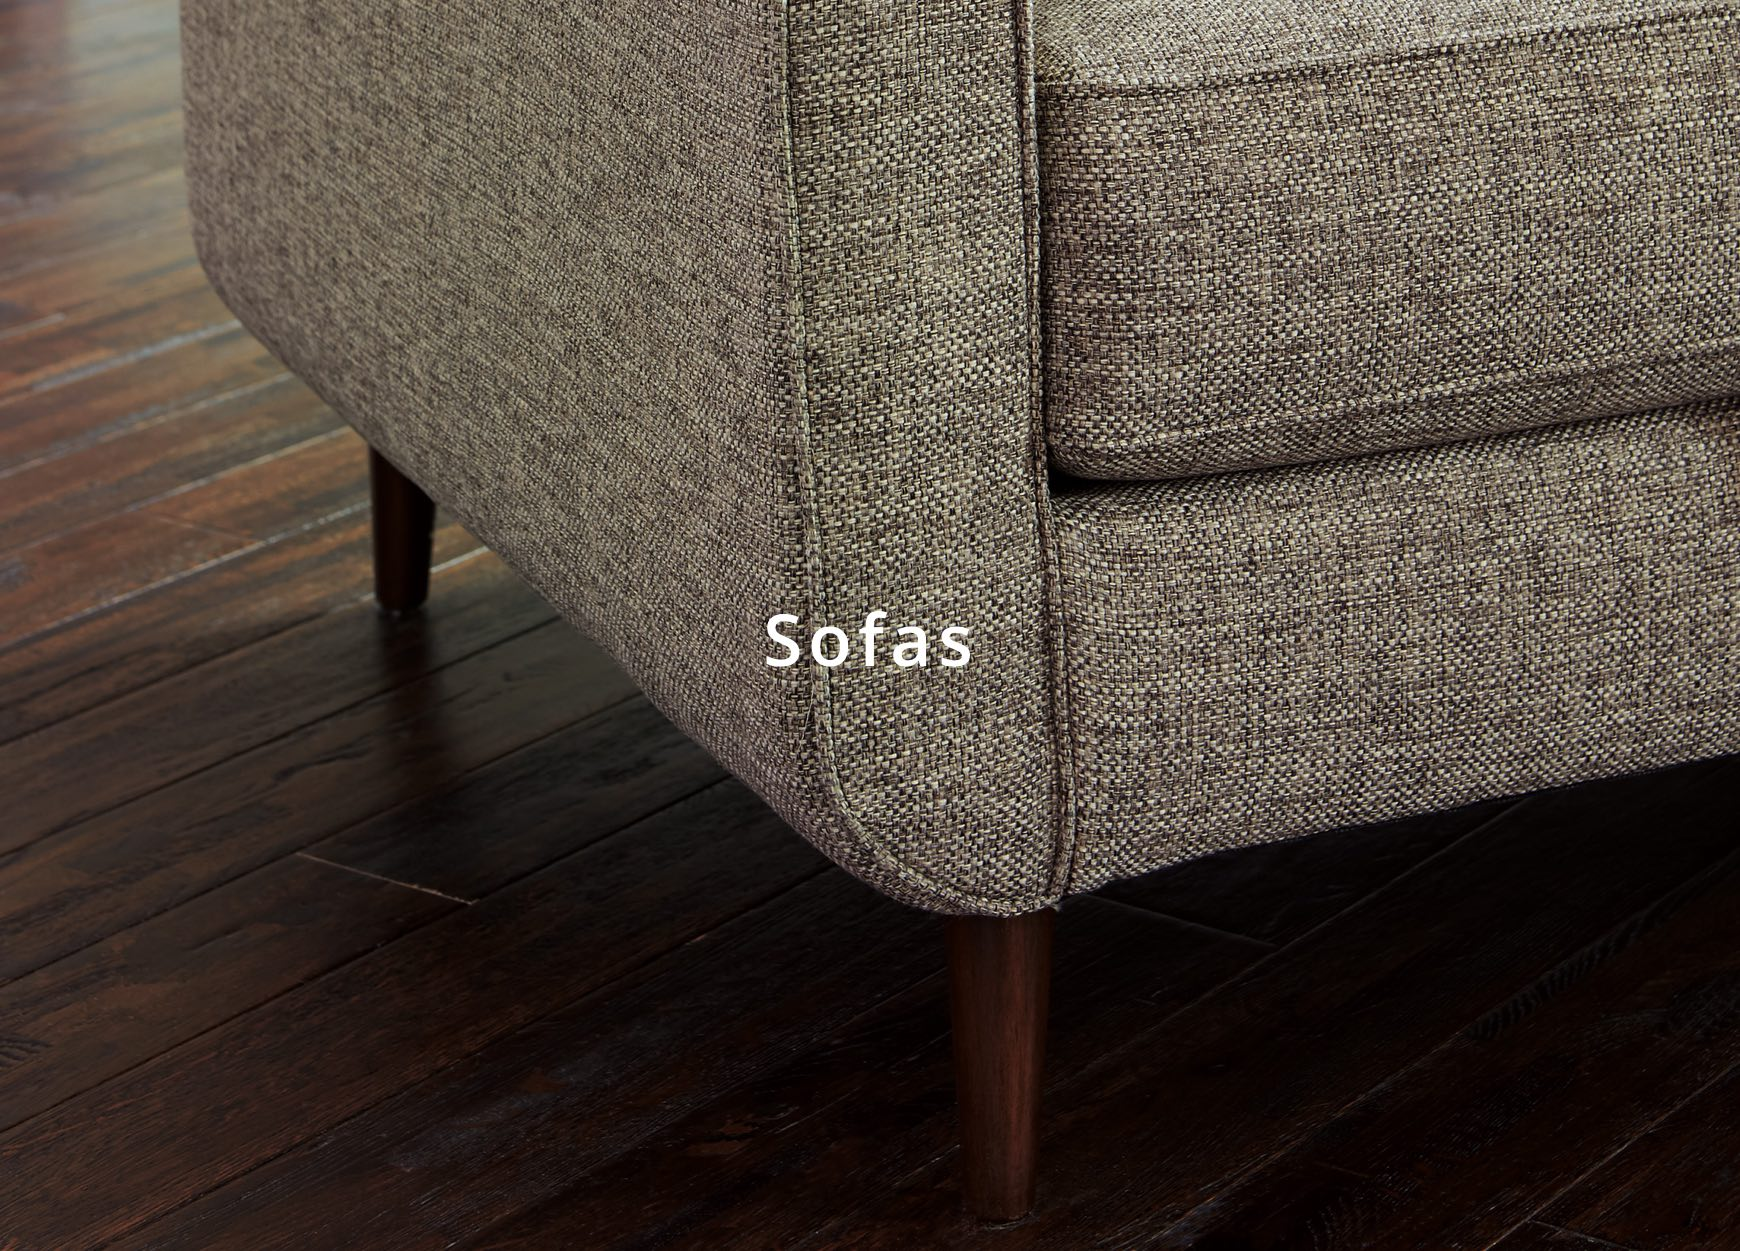 Sofa Outlet Paisley Mealey S Furniture Home